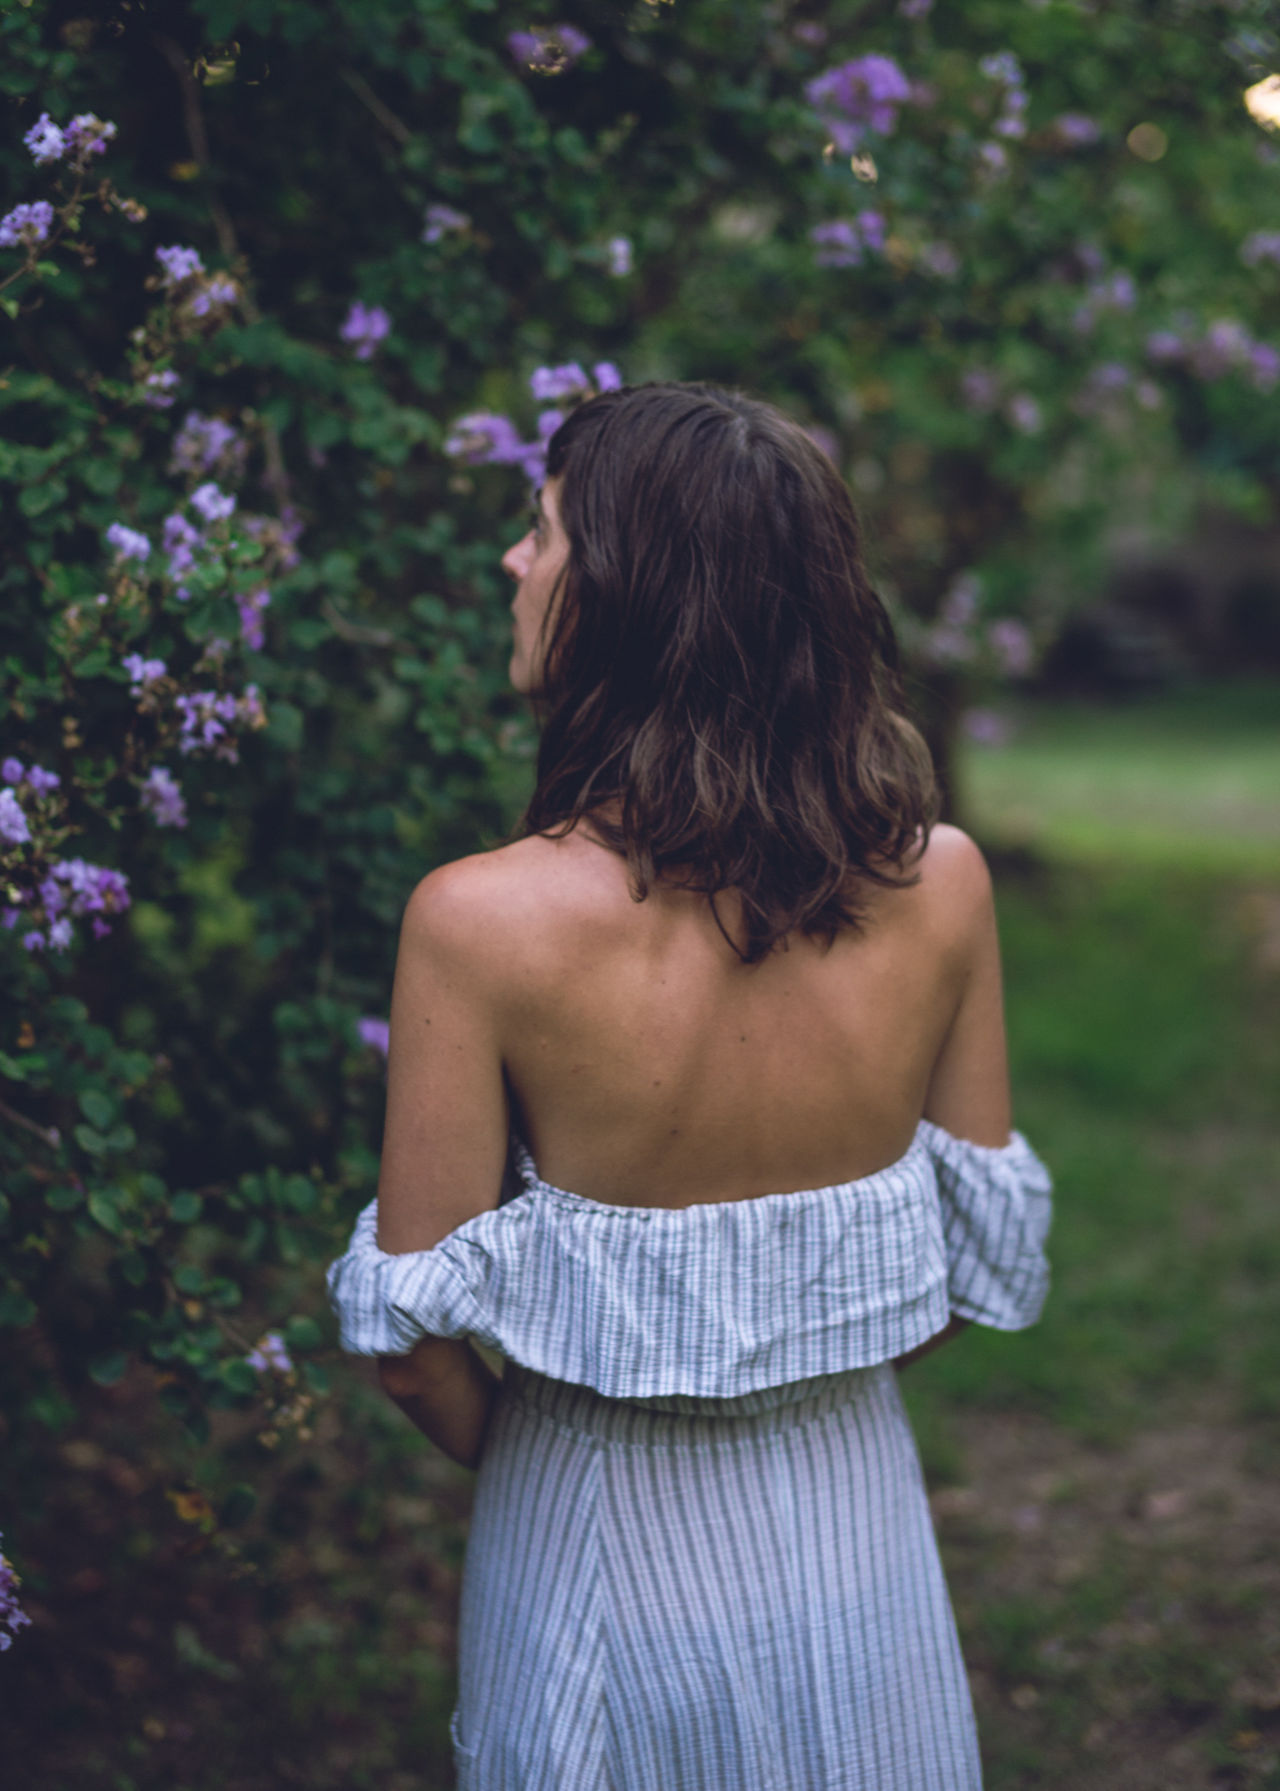 Beautiful Nature Beautiful Woman Beauty In Nature Day Daydreaming Flowers Flowers_collection Girl Holiday Human Back Leisure Activity Lifestyles Love Lovely Girl Nature One Person Outdoors Purple Real People Rear View Standing Travel Travel Photography Tree Young Adult